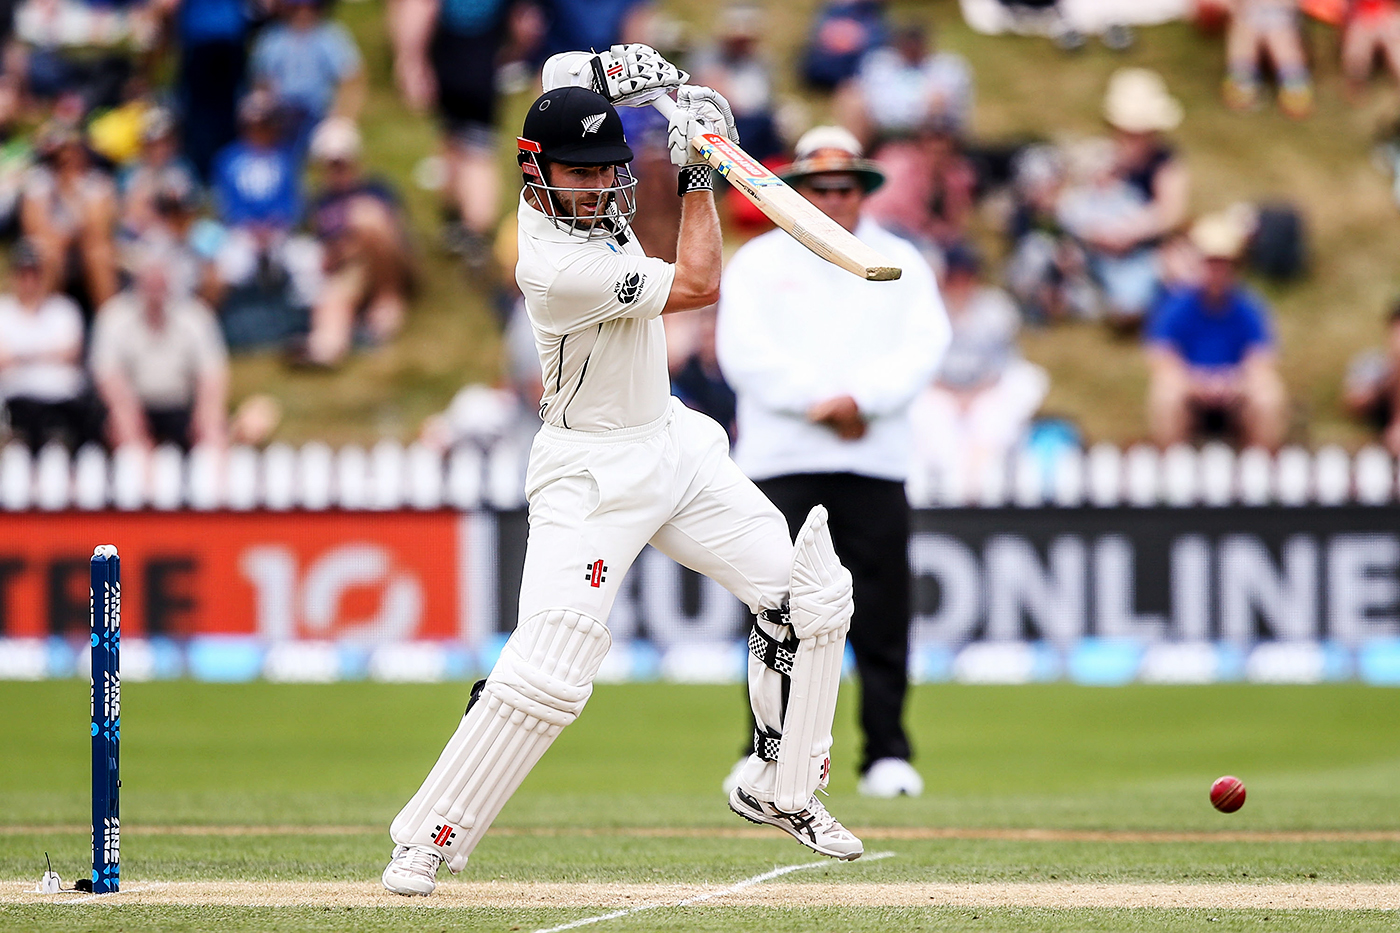 Can we clone Kane? With more than 7000 runs at an average over 50 and 24 Test hundreds, Williamson is easily New Zealand's most dominant batter of all time